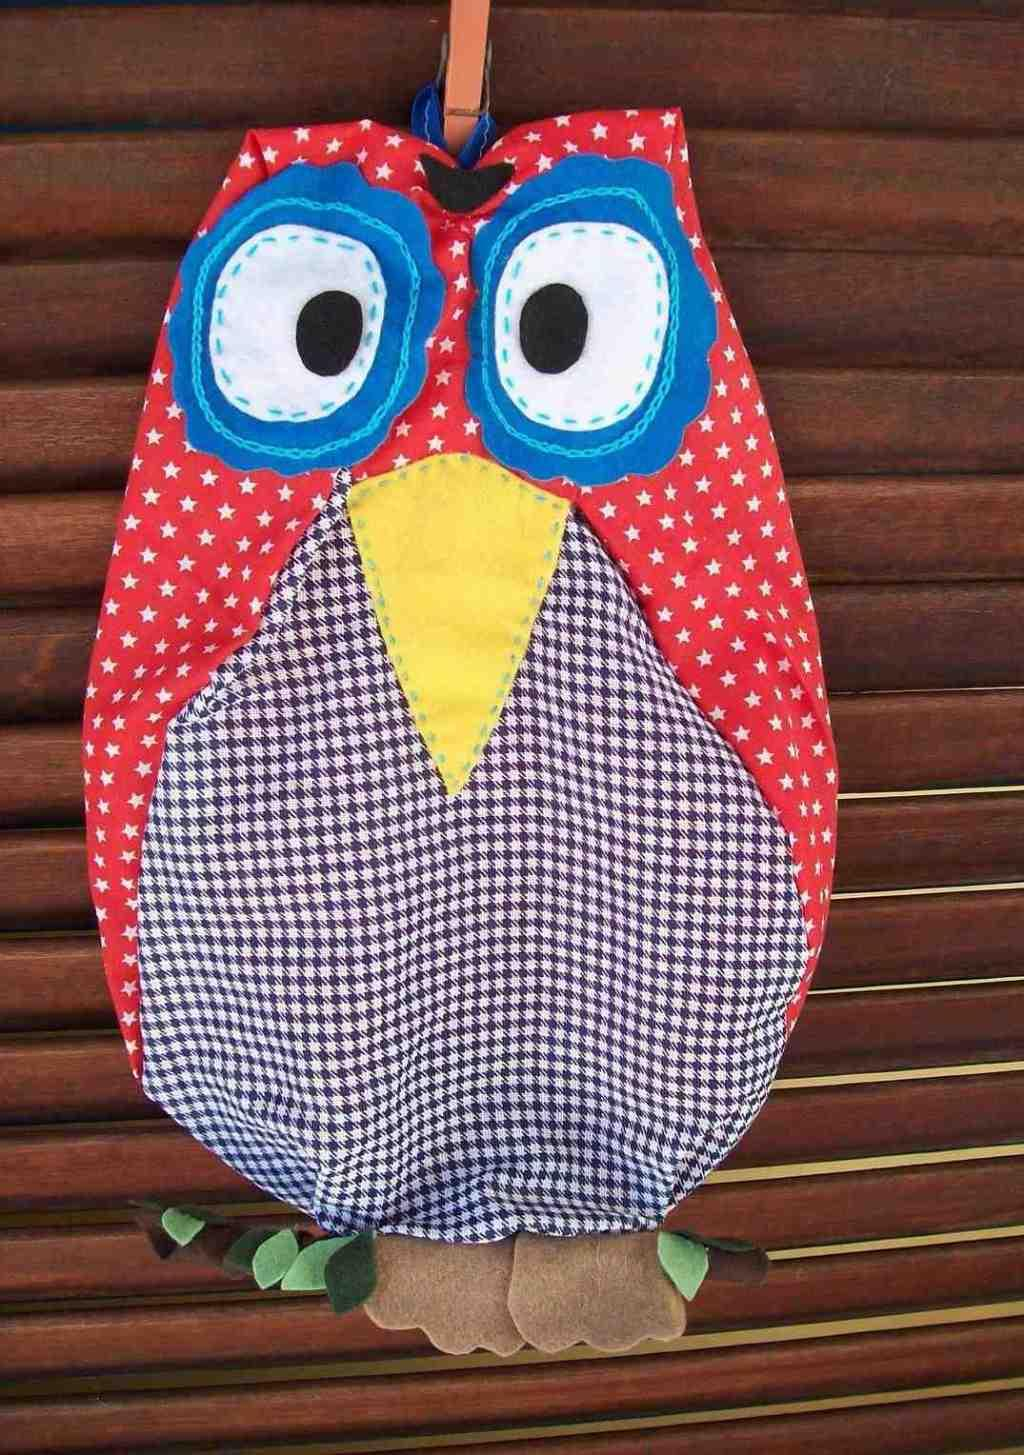 Pulling Owl Bag: 60 ideas with photos and video step by step 8